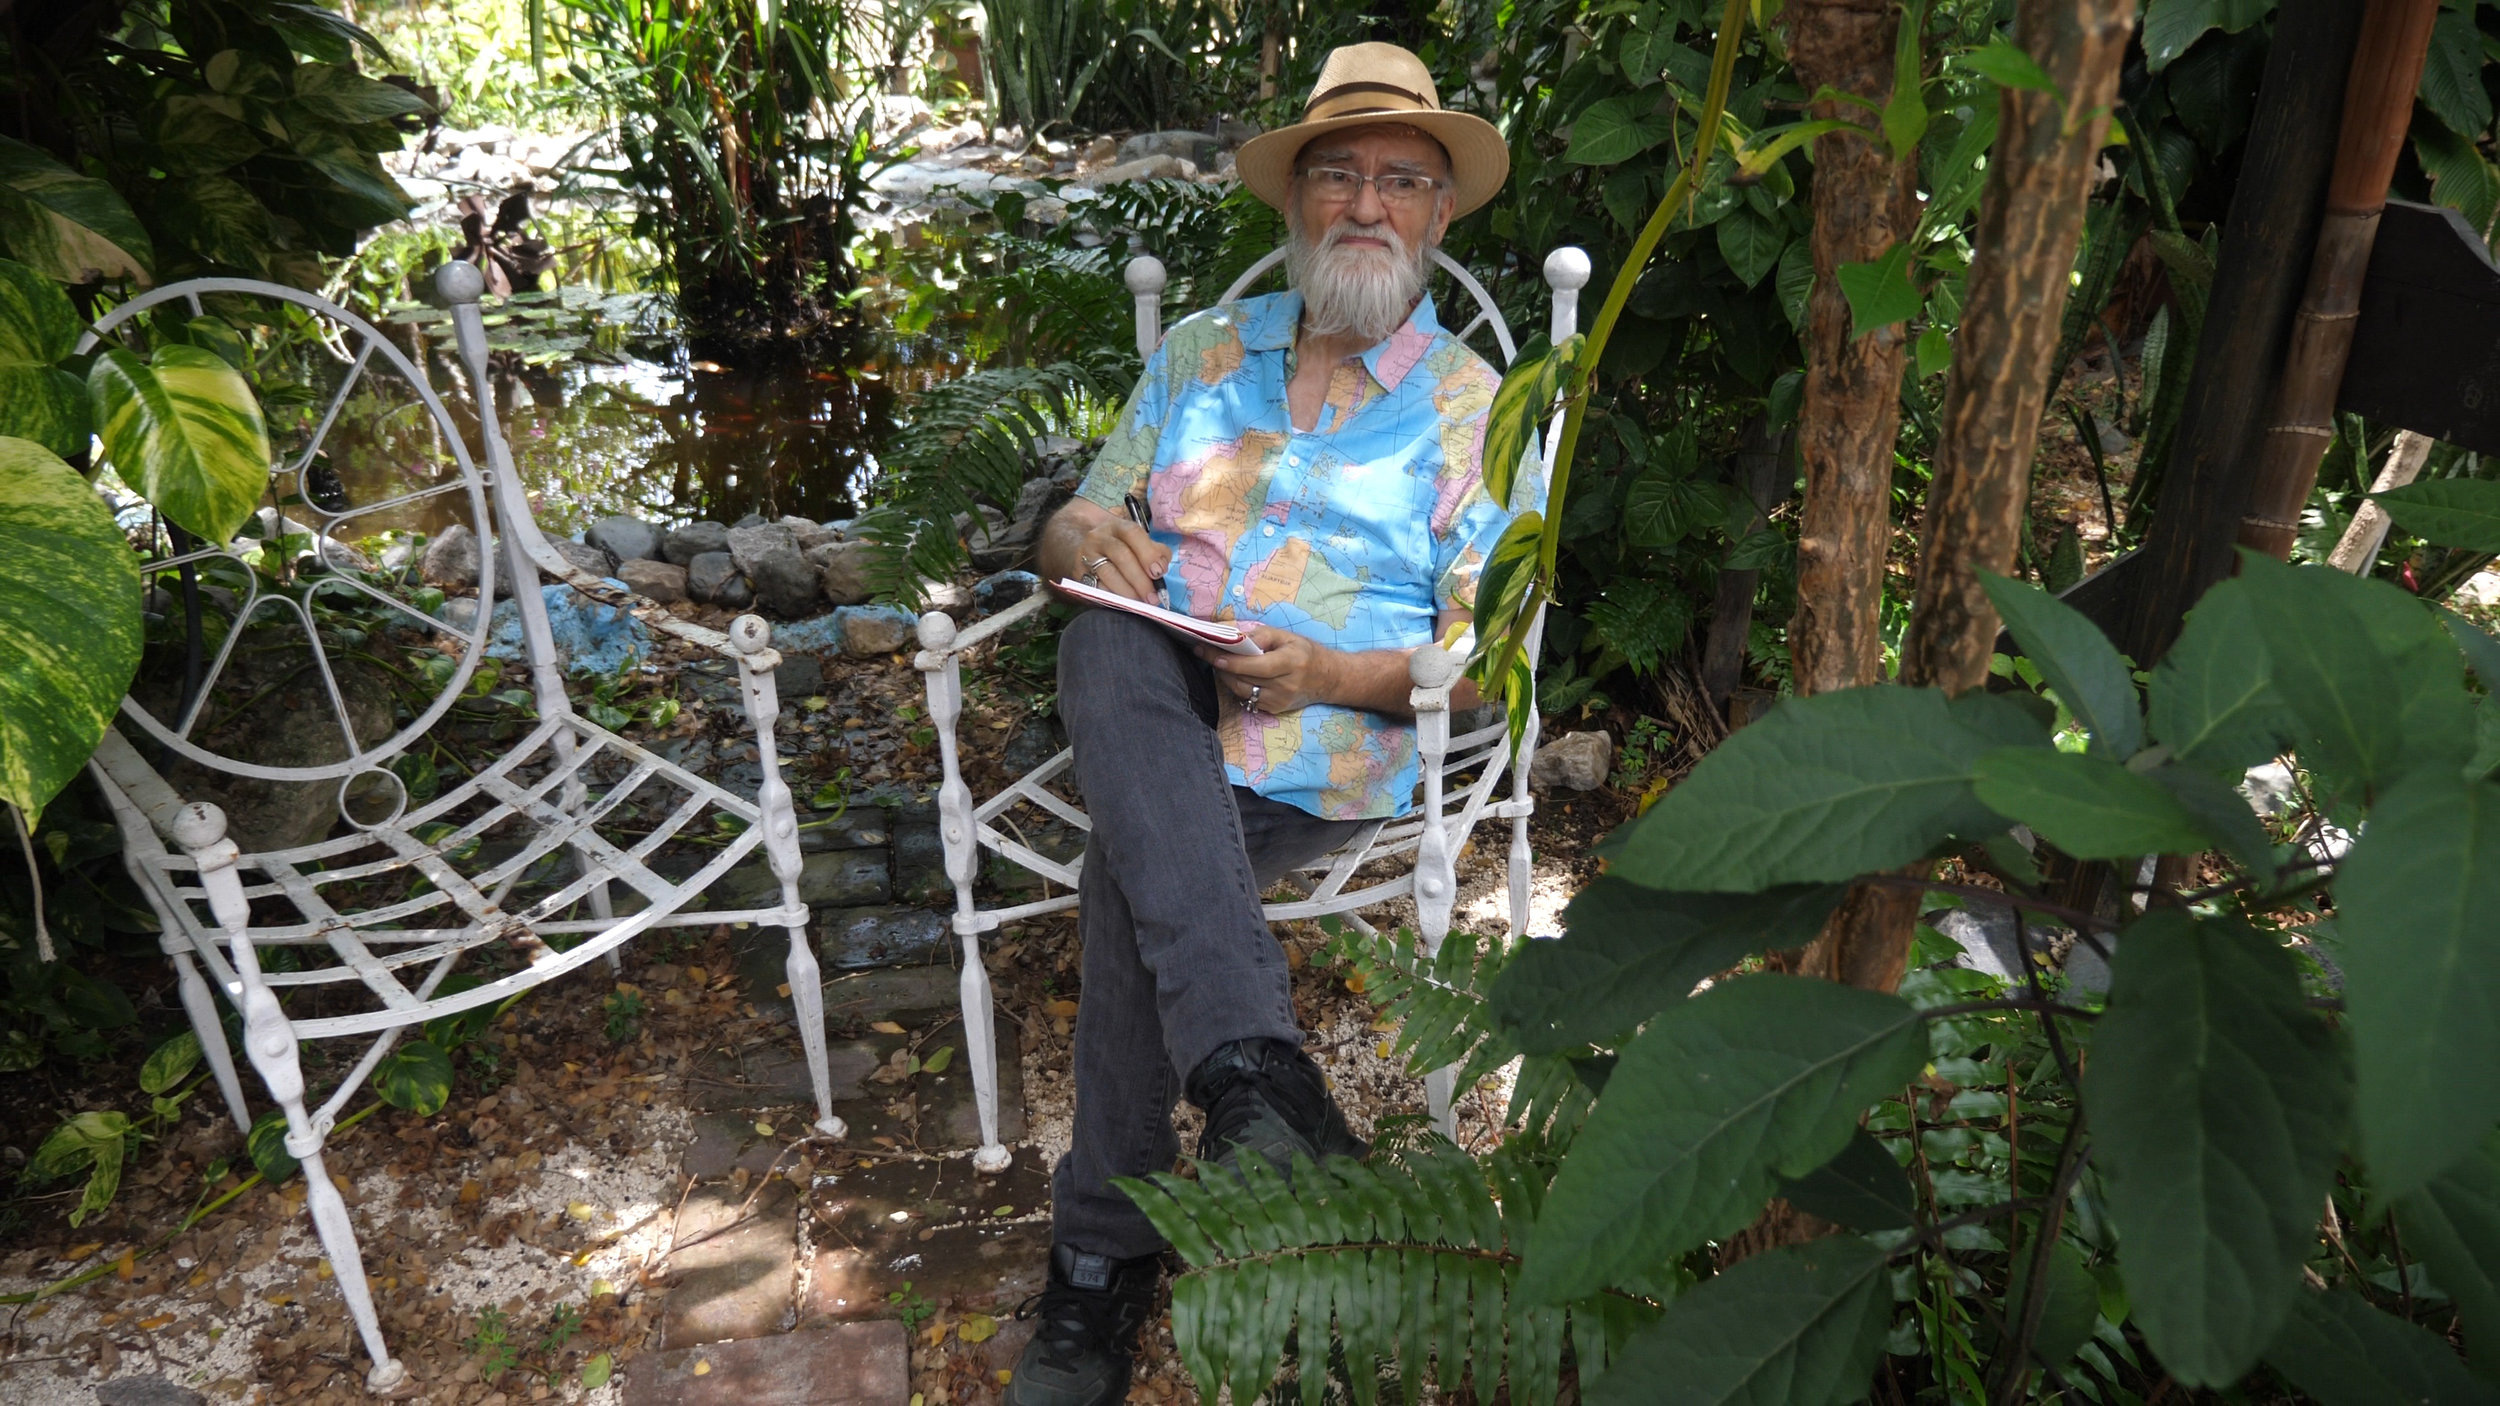 Antonio Martorell chilling in his worldly shirt in the garden.jpg